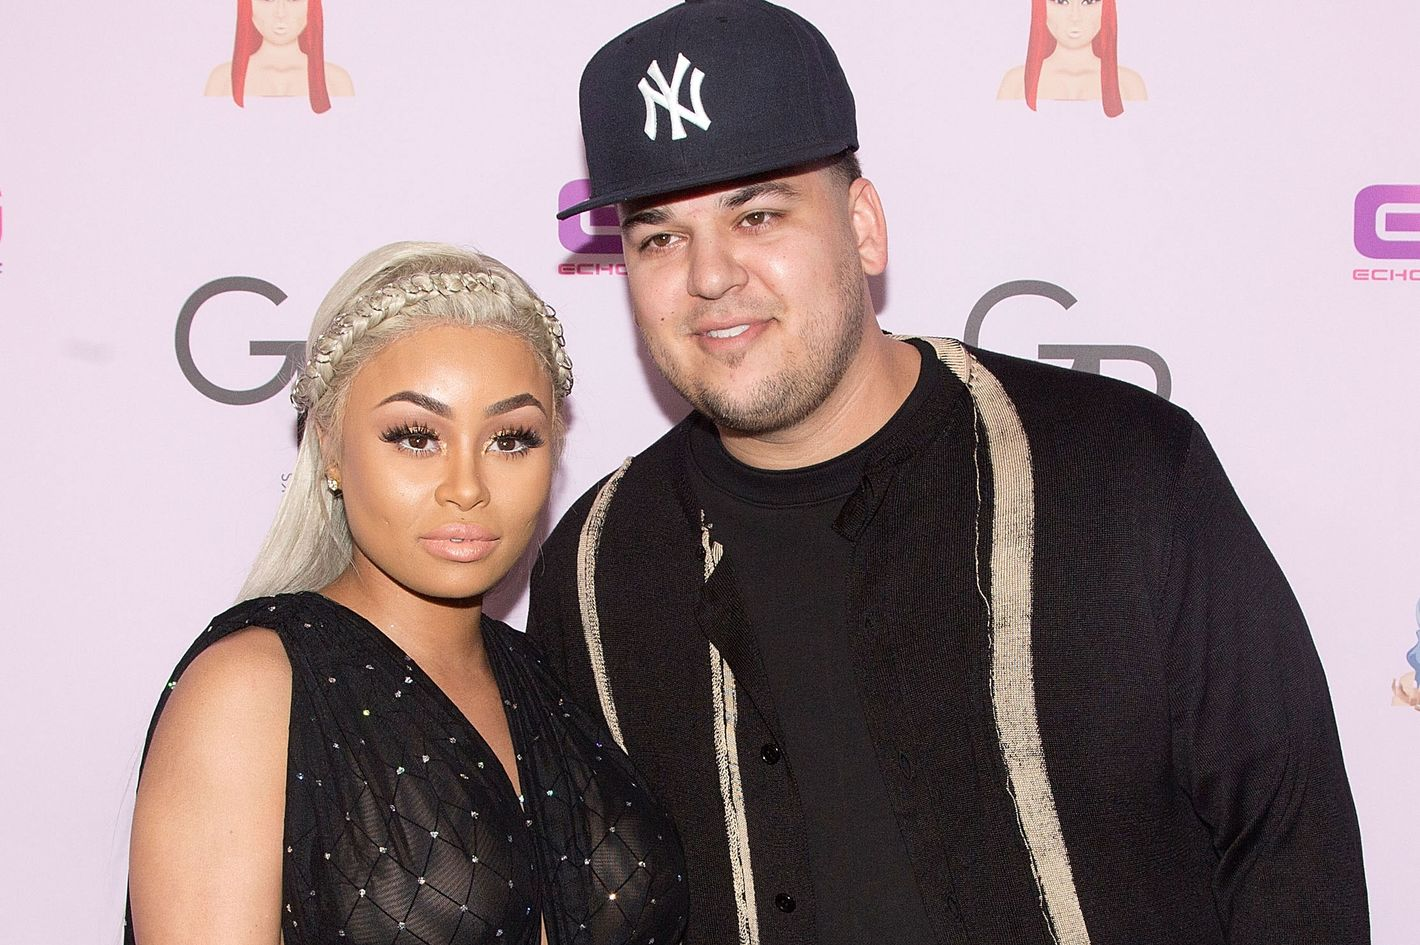 Blac Chyna Tweets Out Rob Kardashian's Phone Number As an Apparent Warning to His Fangirls